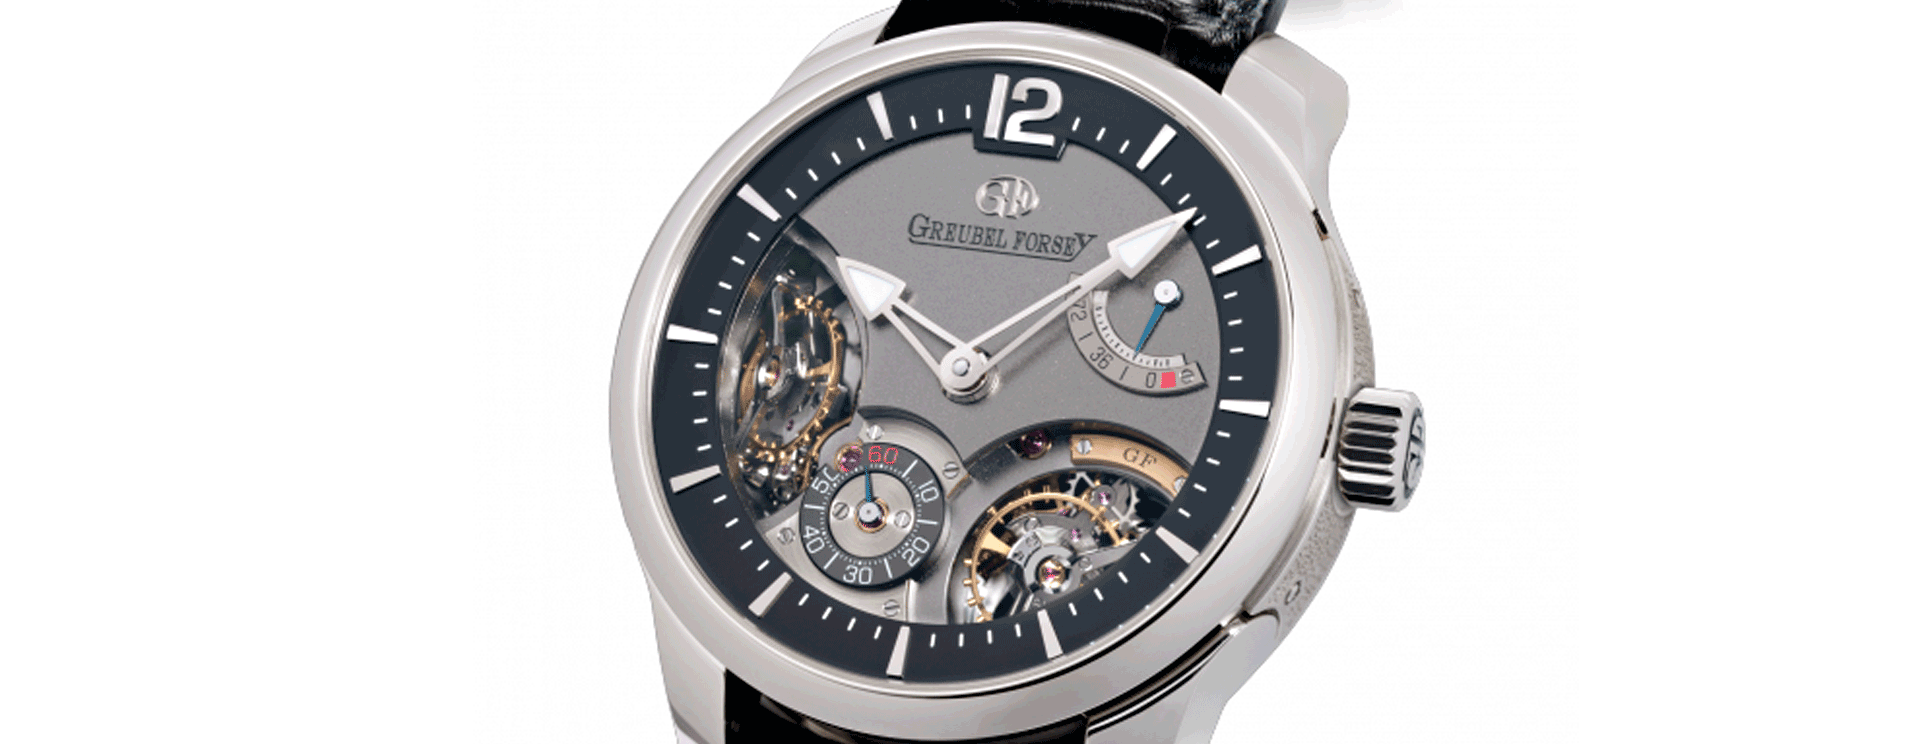 Double Balancier 35º White Gold